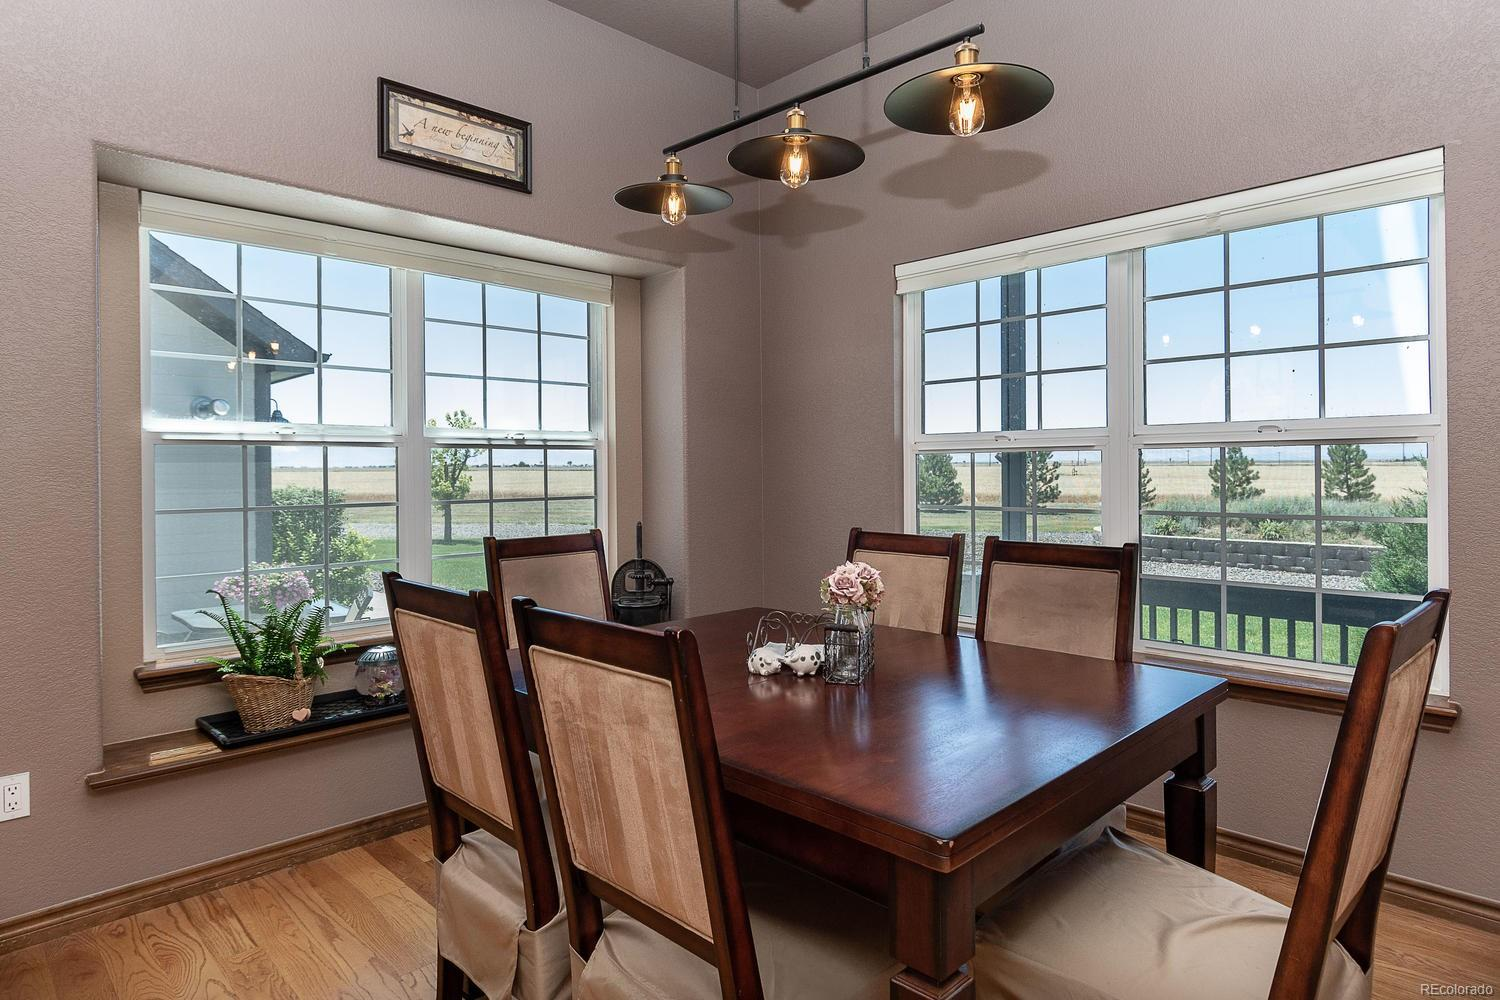 Formal dining room, hardwood floors, two walls of windows, chandelier for attrac